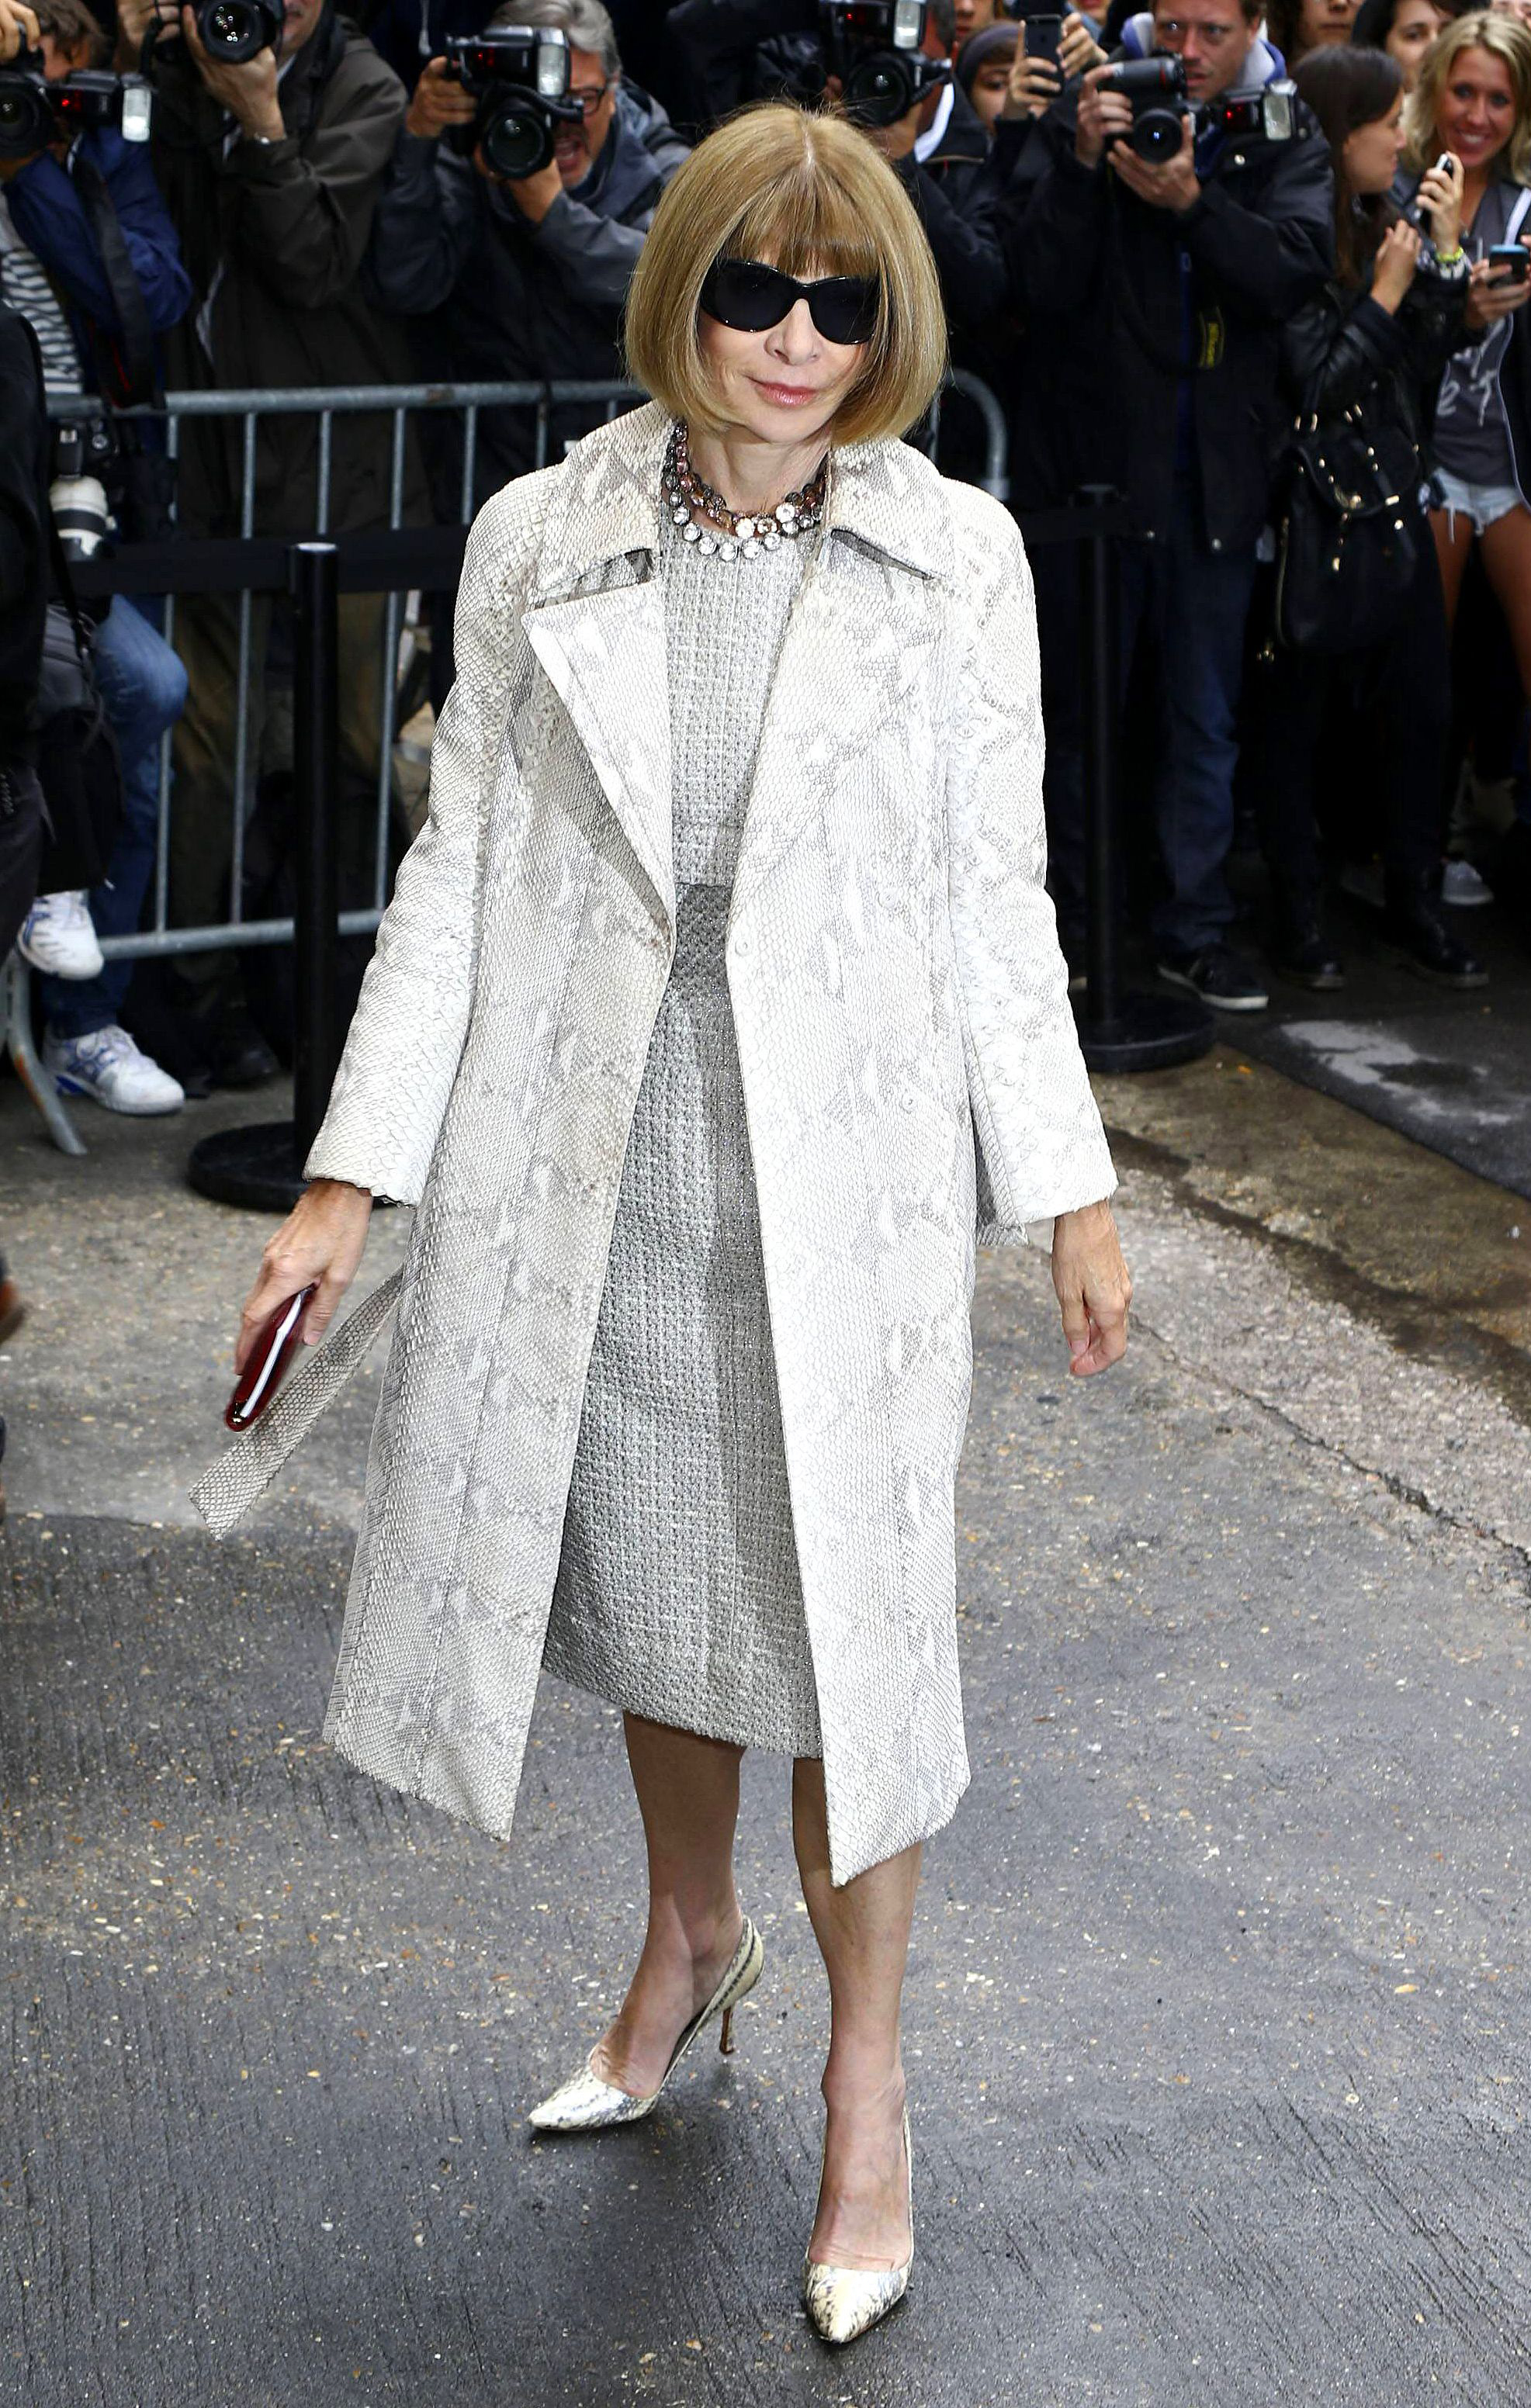 Chanel show, Haute Couture Fall Winter 2014, Paris Fashion Week, France - 08 Jul 2014